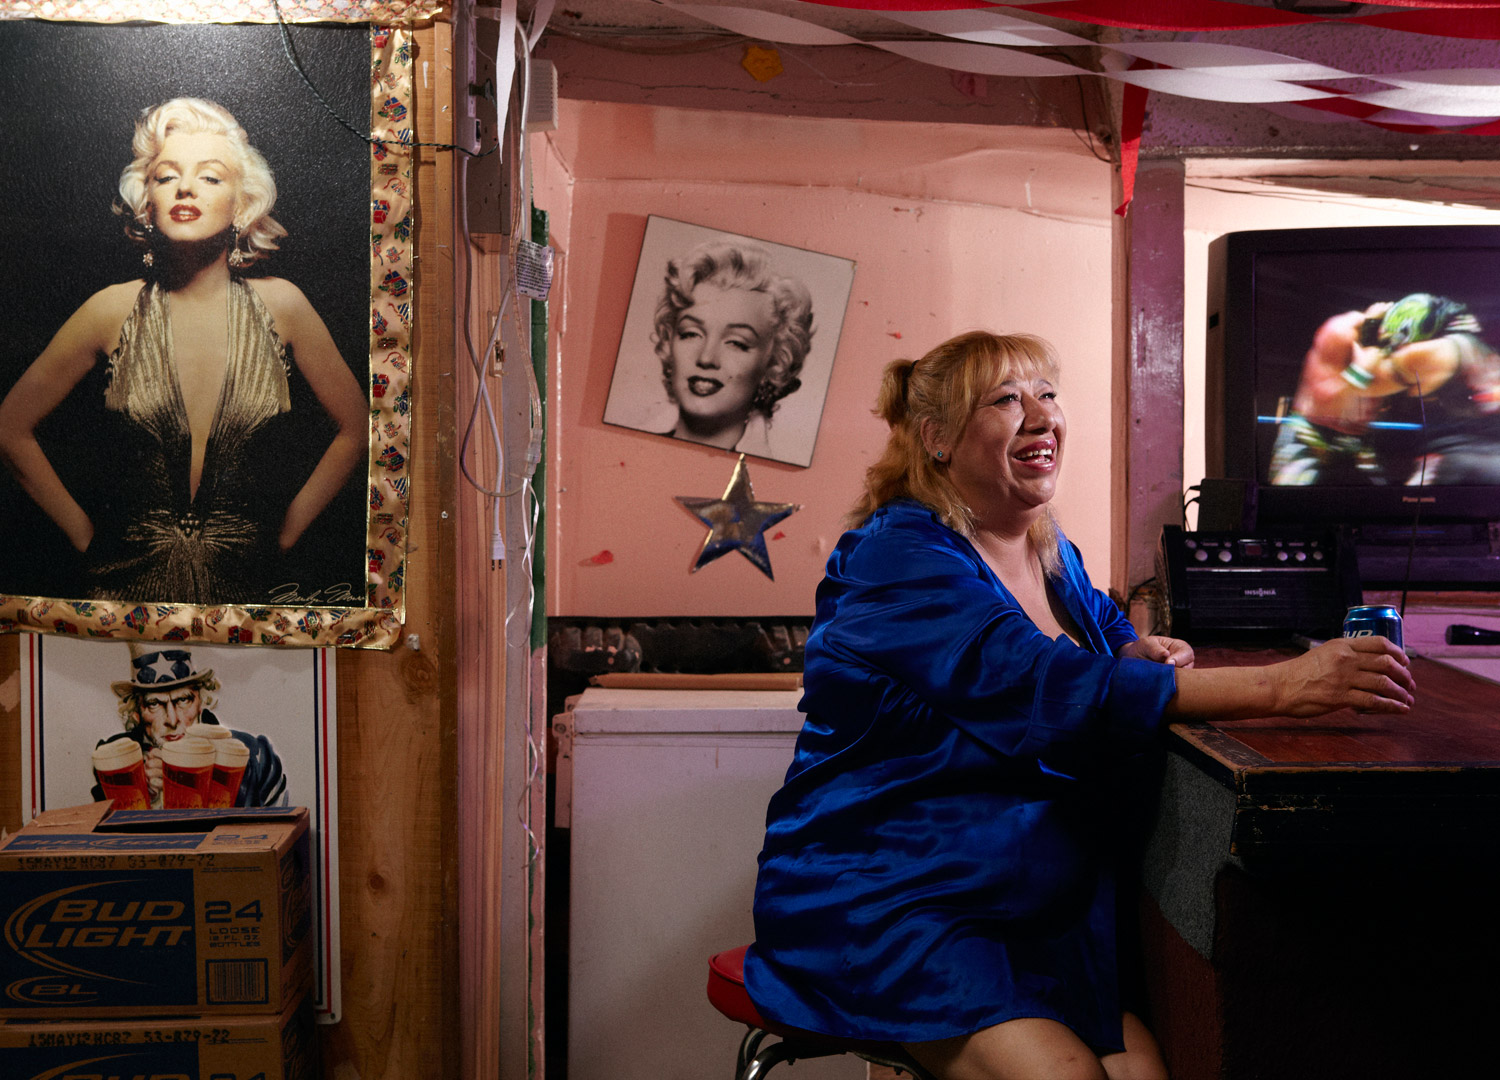 """""""Goldie"""" crossed the border when she was 16 and started dancing at a topless bar where most of the dancers were illegal immigrants from Juarez. She soon left that life behind, and now she owns Goldie's Bar, a tiny cantina in an industrial section of south central El Paso. The walls of Goldie's Bar are littered with pictures of her hero, Marilyn Monroe: """"I like that she often said that women should be liberated, that men shouldn't limit them, that a woman should be the way she wants to be."""""""